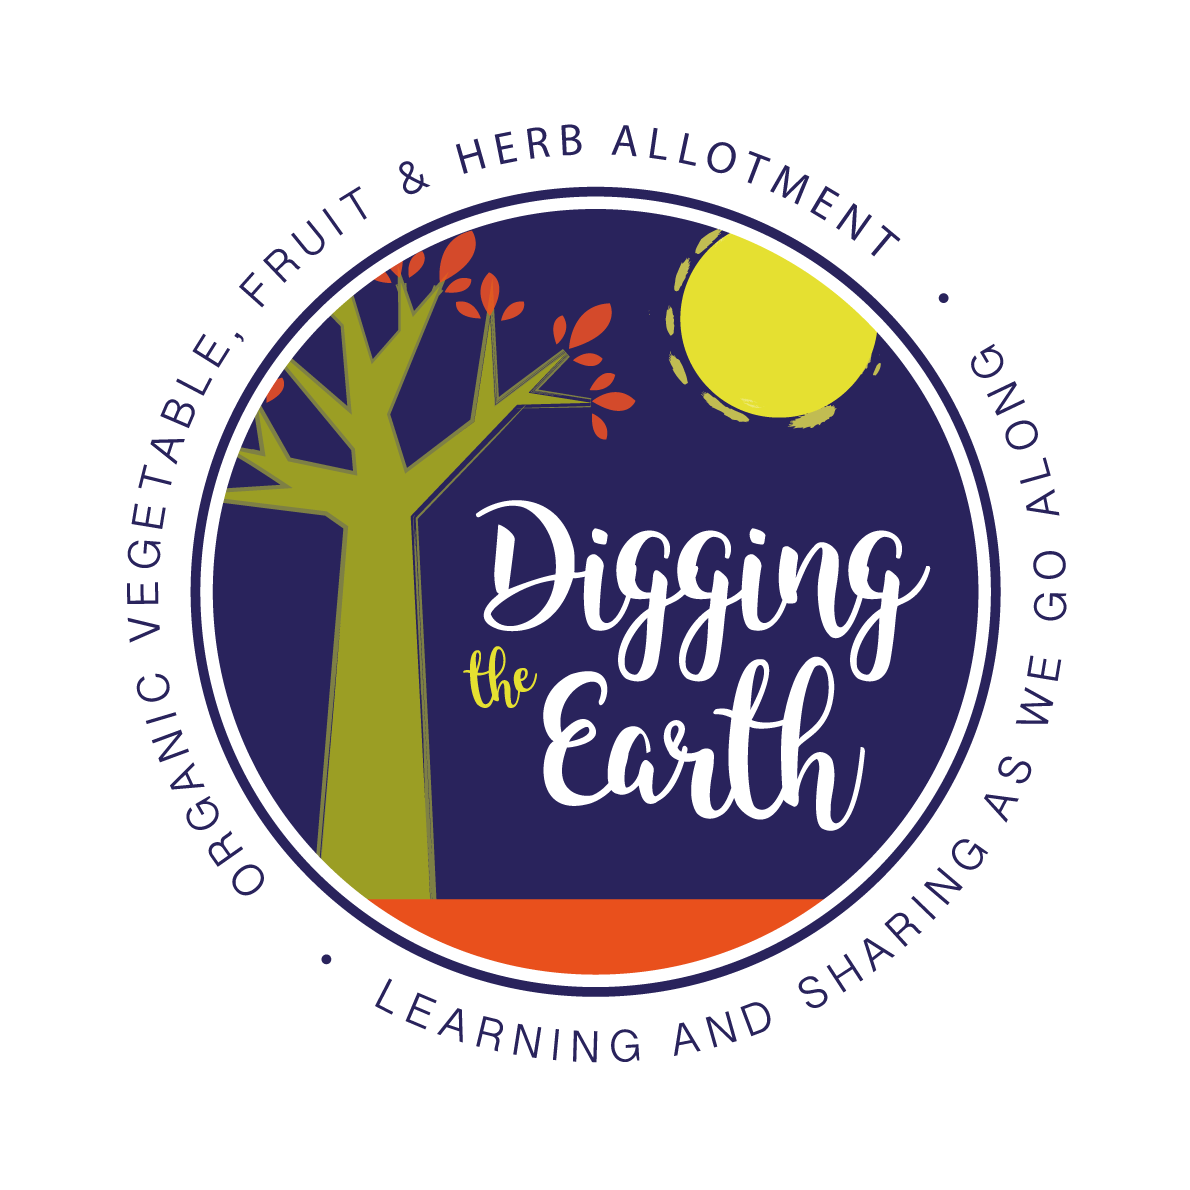 Digging the Earth